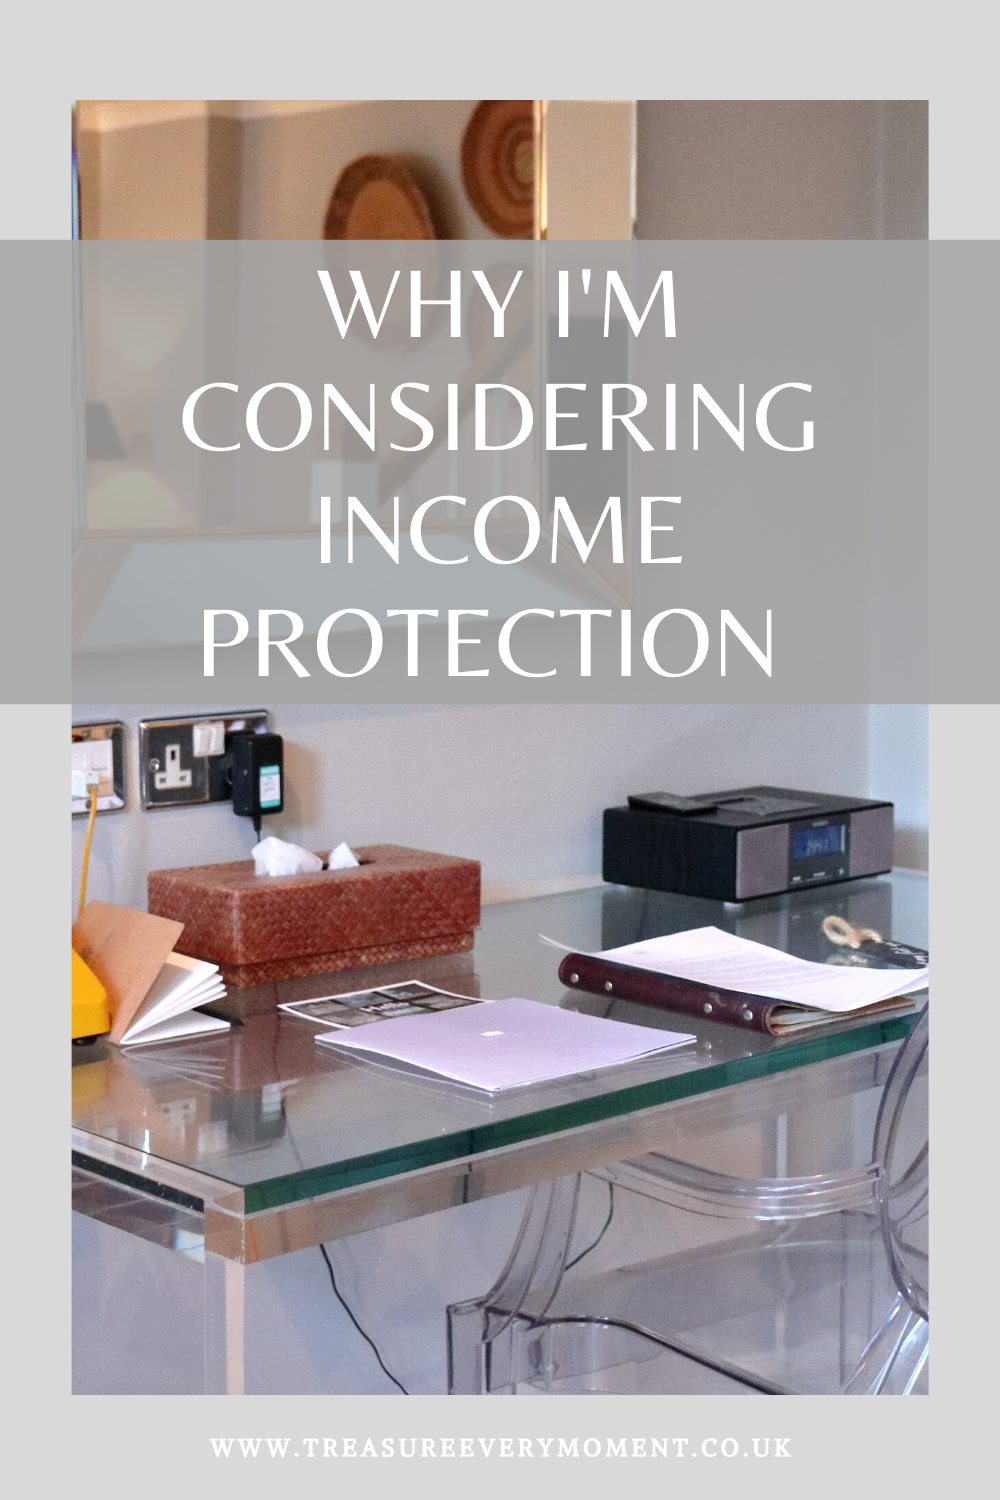 LIFE: Why I'm Considering Income Protection